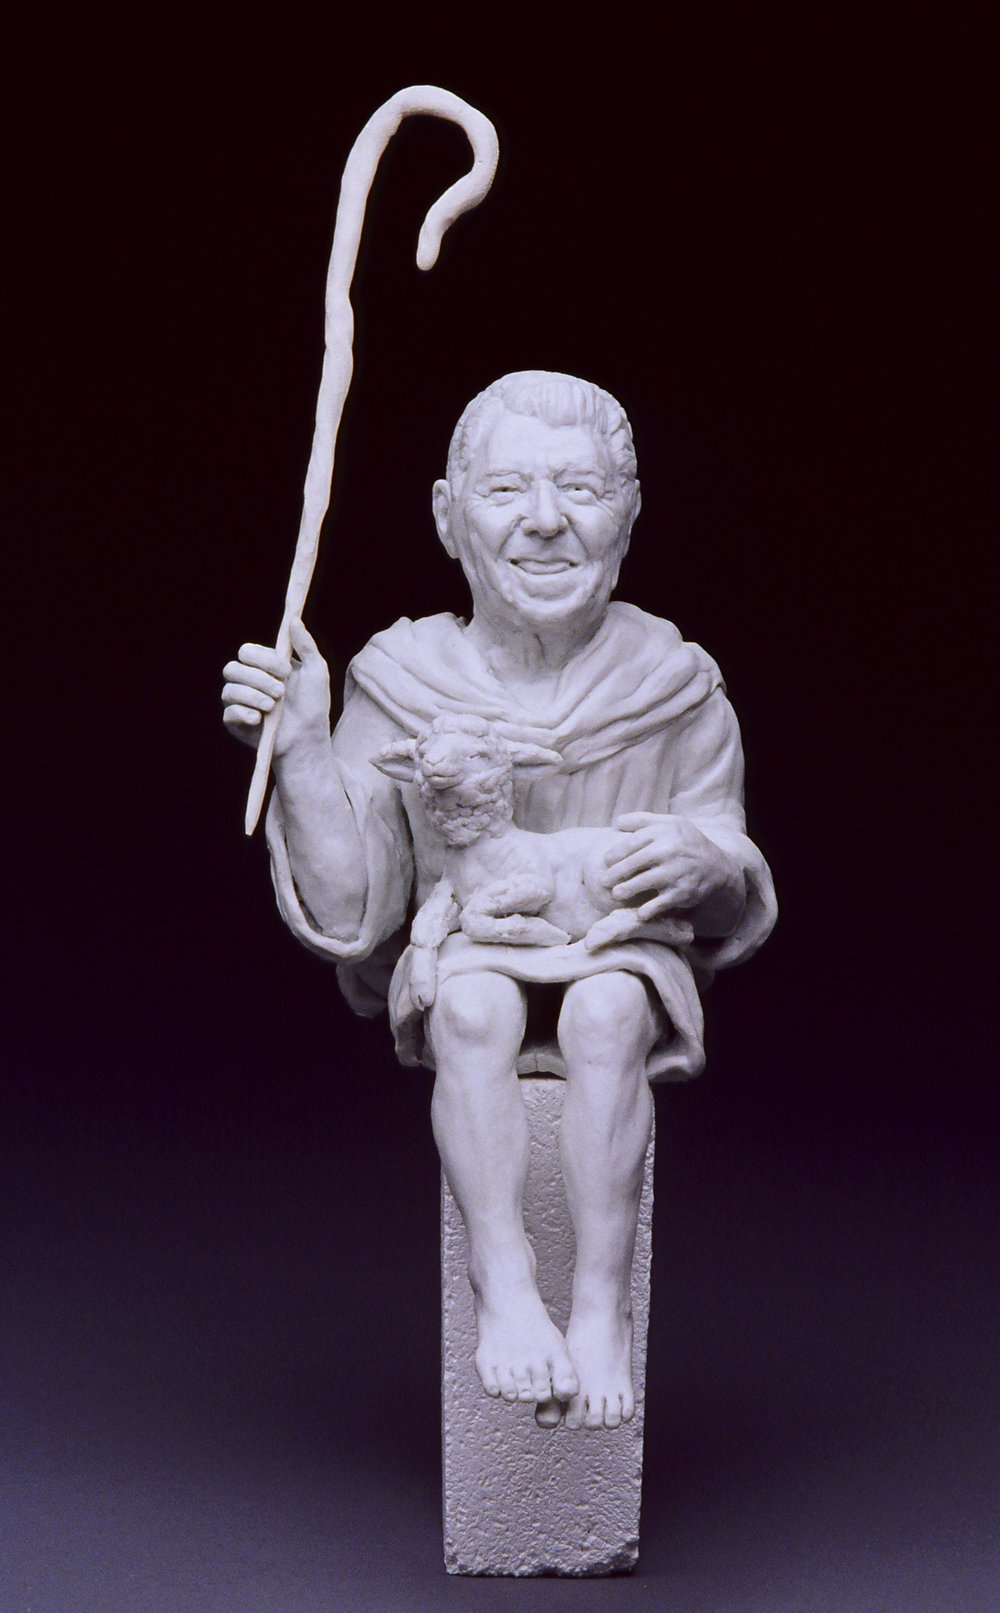 "THE GOOD SHEPHERD , 2004  cone 10 fired, unglazed porcelain  12"" by 5"" by 6"